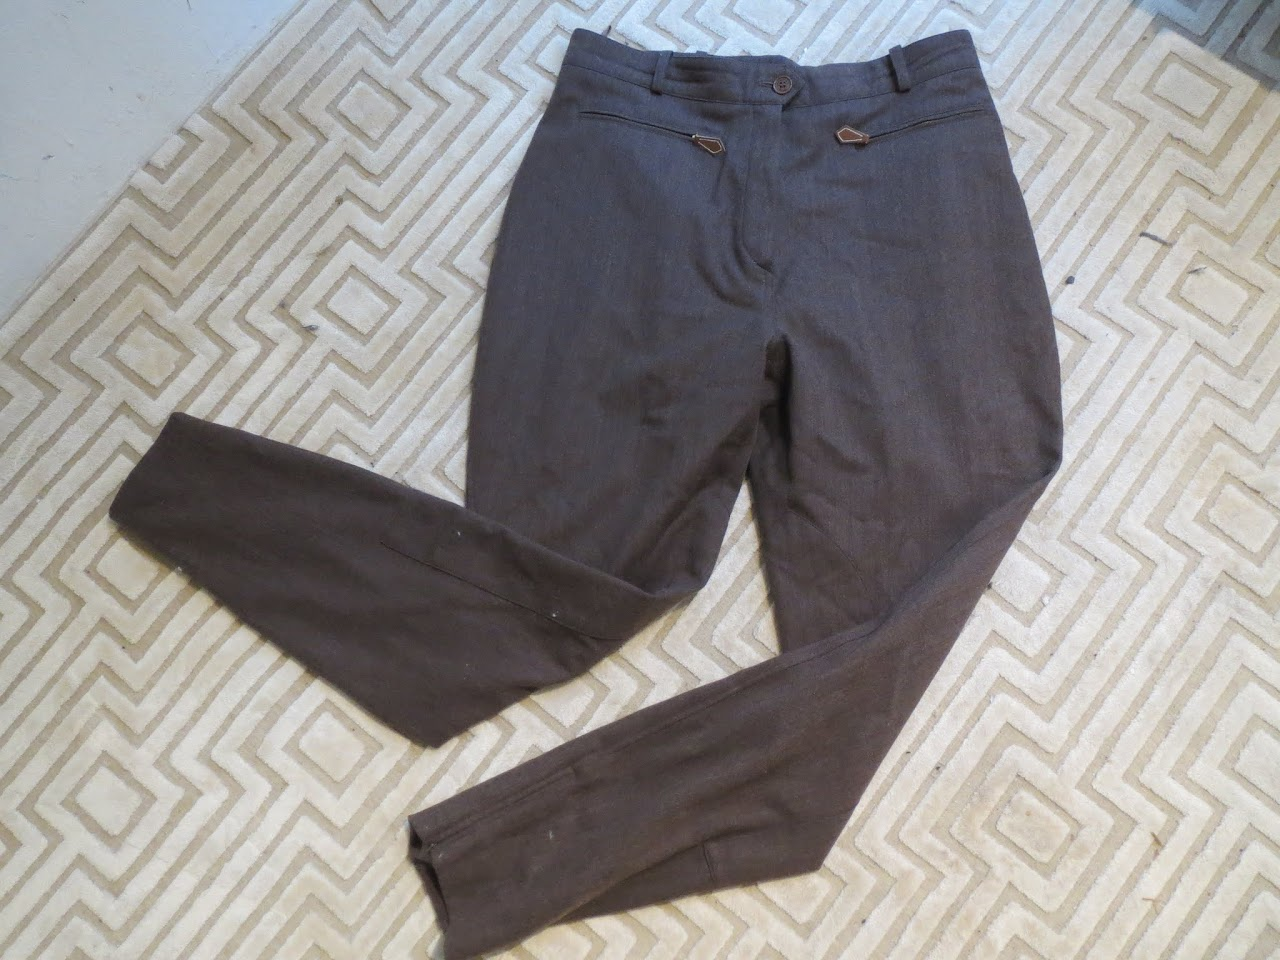 Hermes Trousers